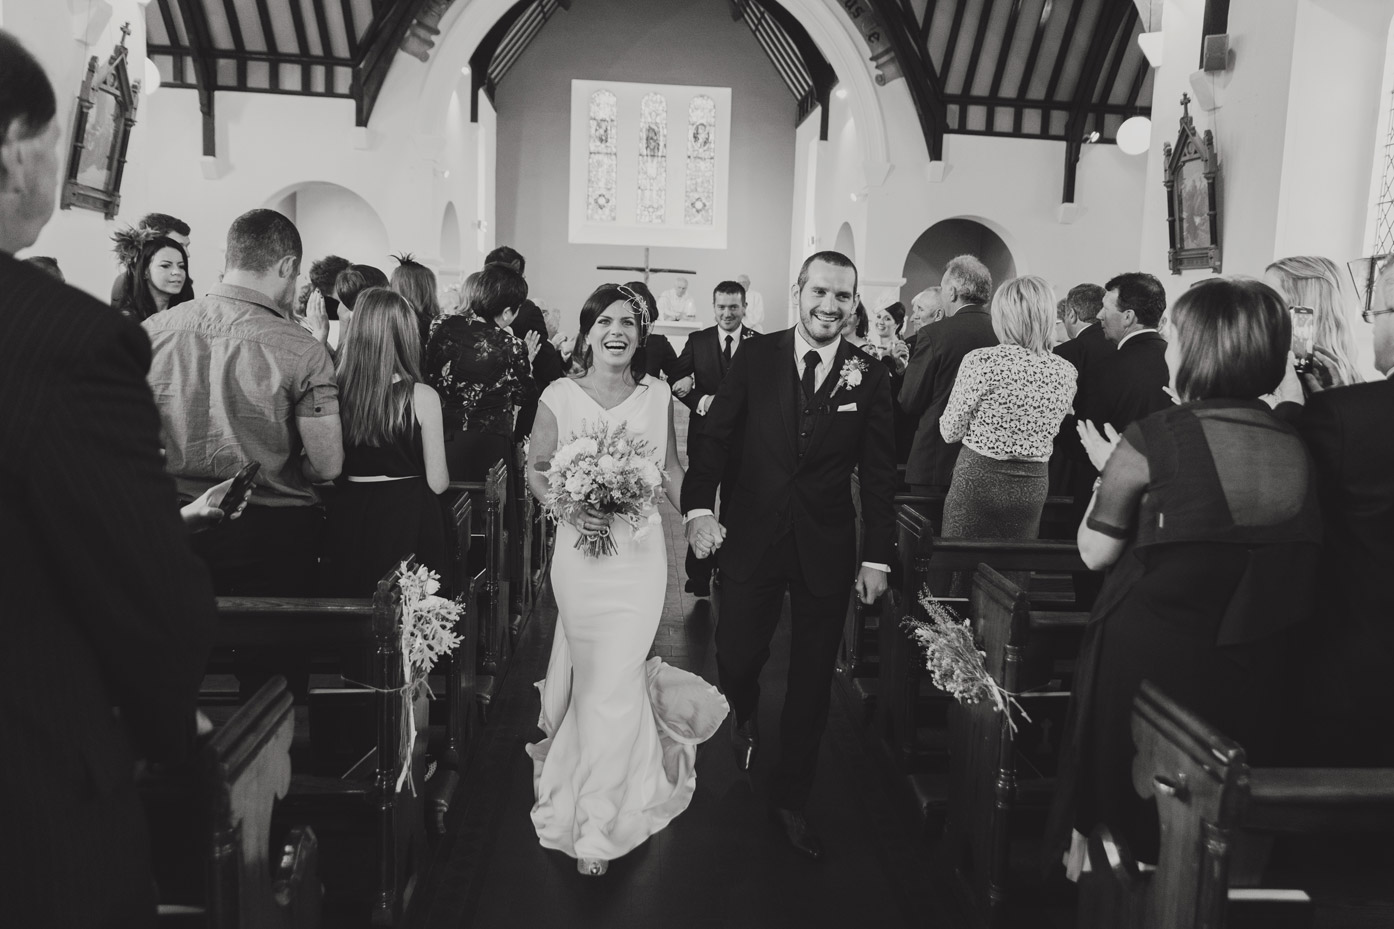 Bride and groom just married leaving church in meath. Ireland. Wedding photographers.